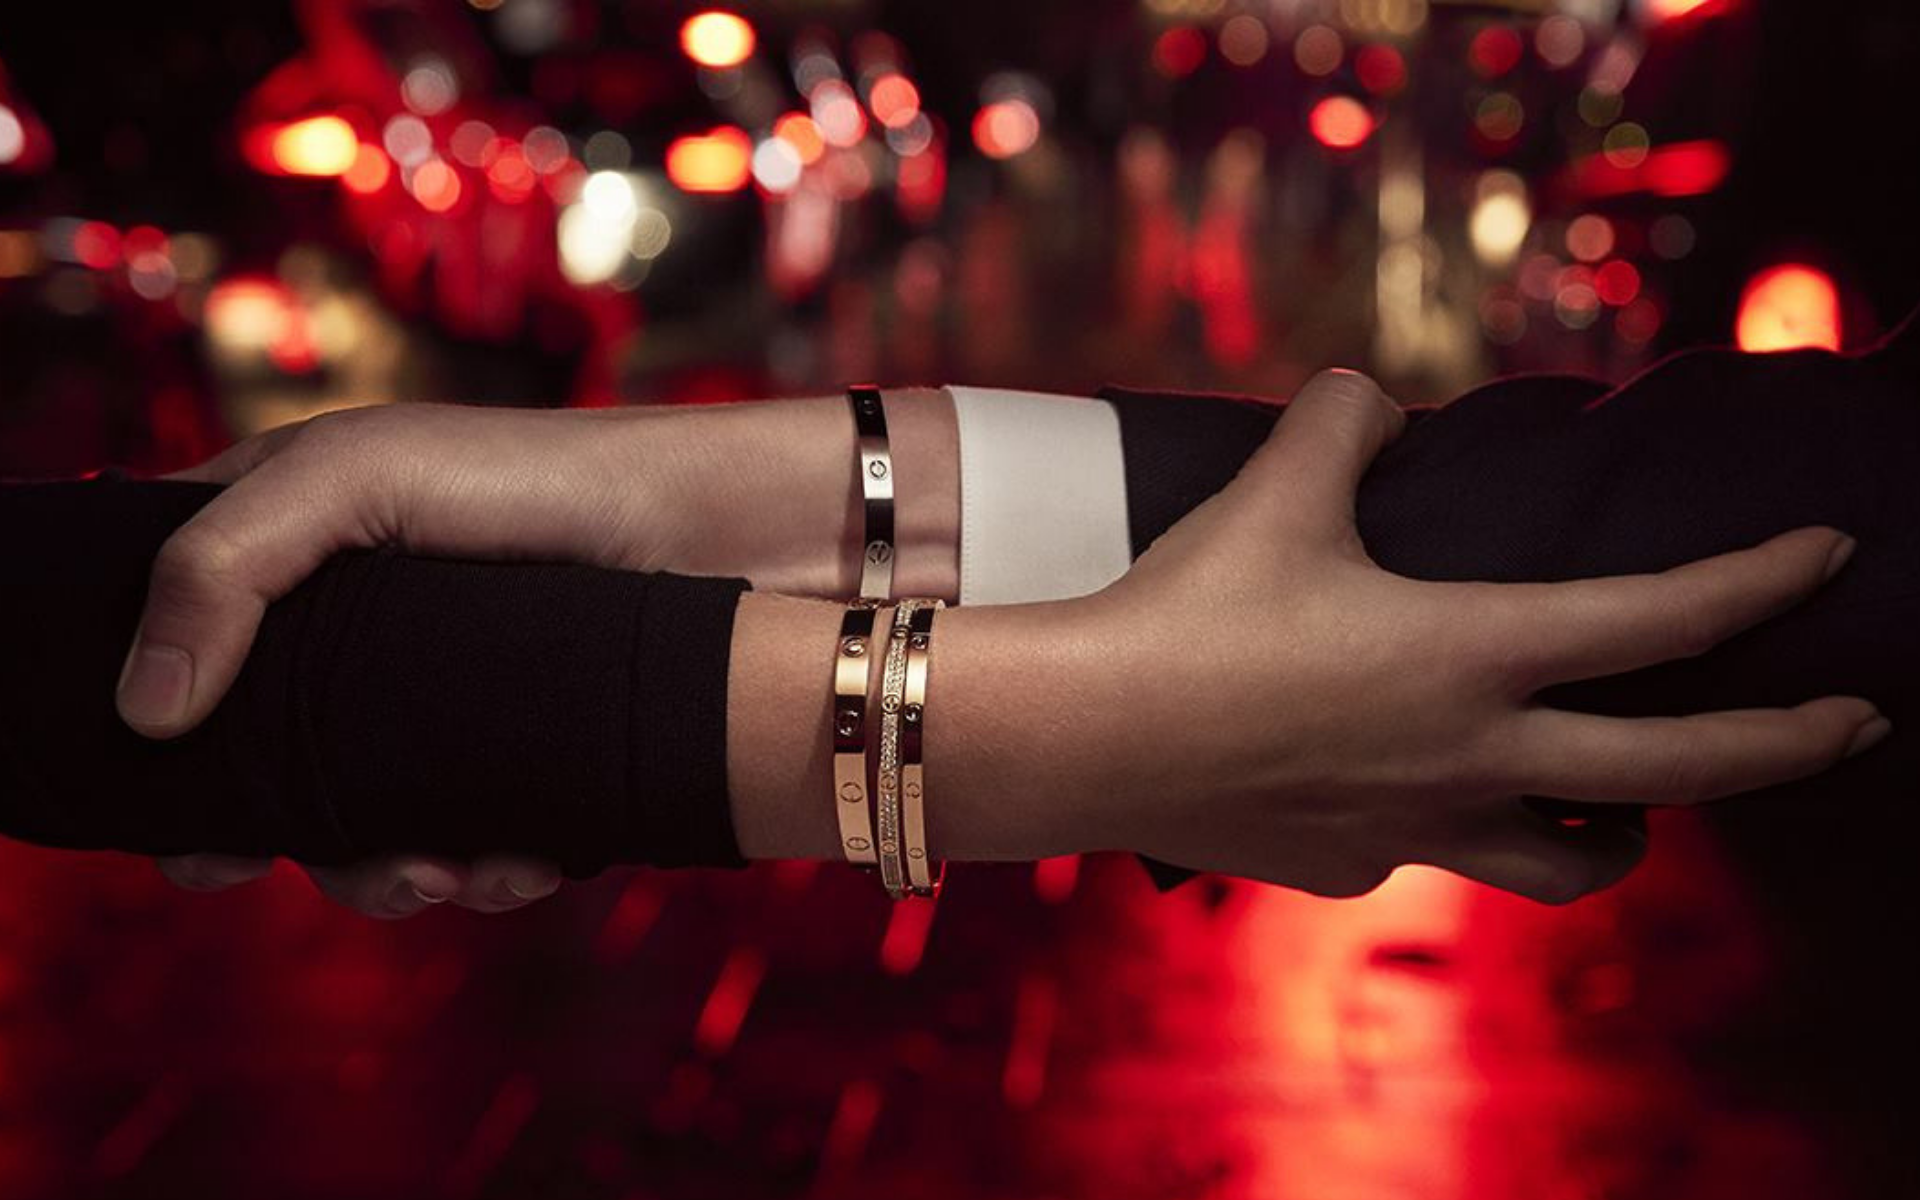 High and fine jewelleries worth splurging your money on for your everyday wear. Photo: Courtesy of Cartier